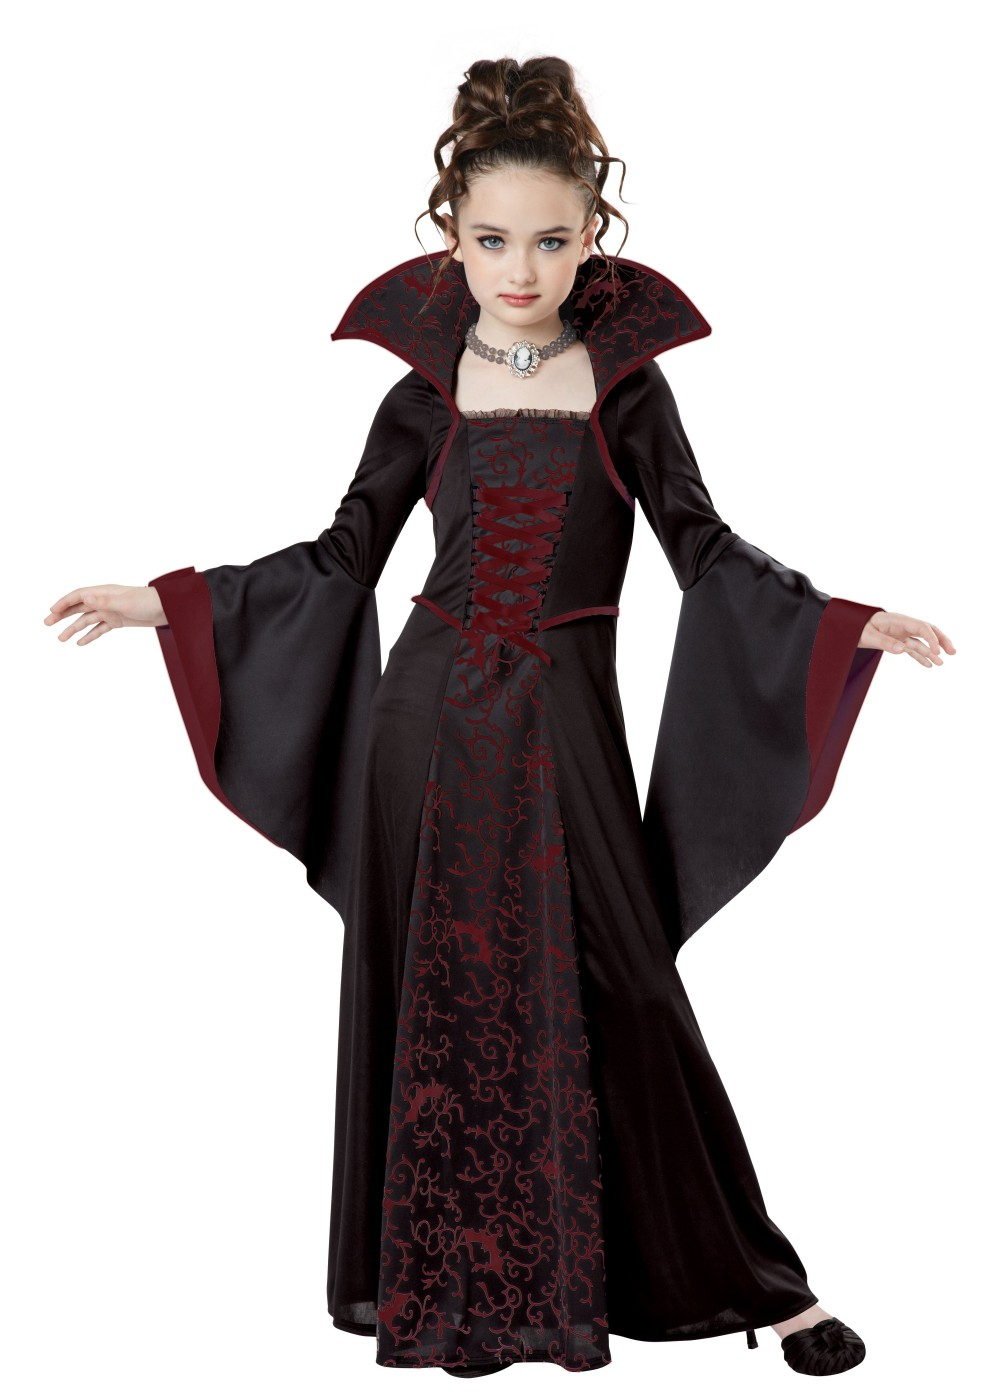 Cute Stylish Child Girl Wallpaper Royal Vampire Girl Costume Vampire Costumes